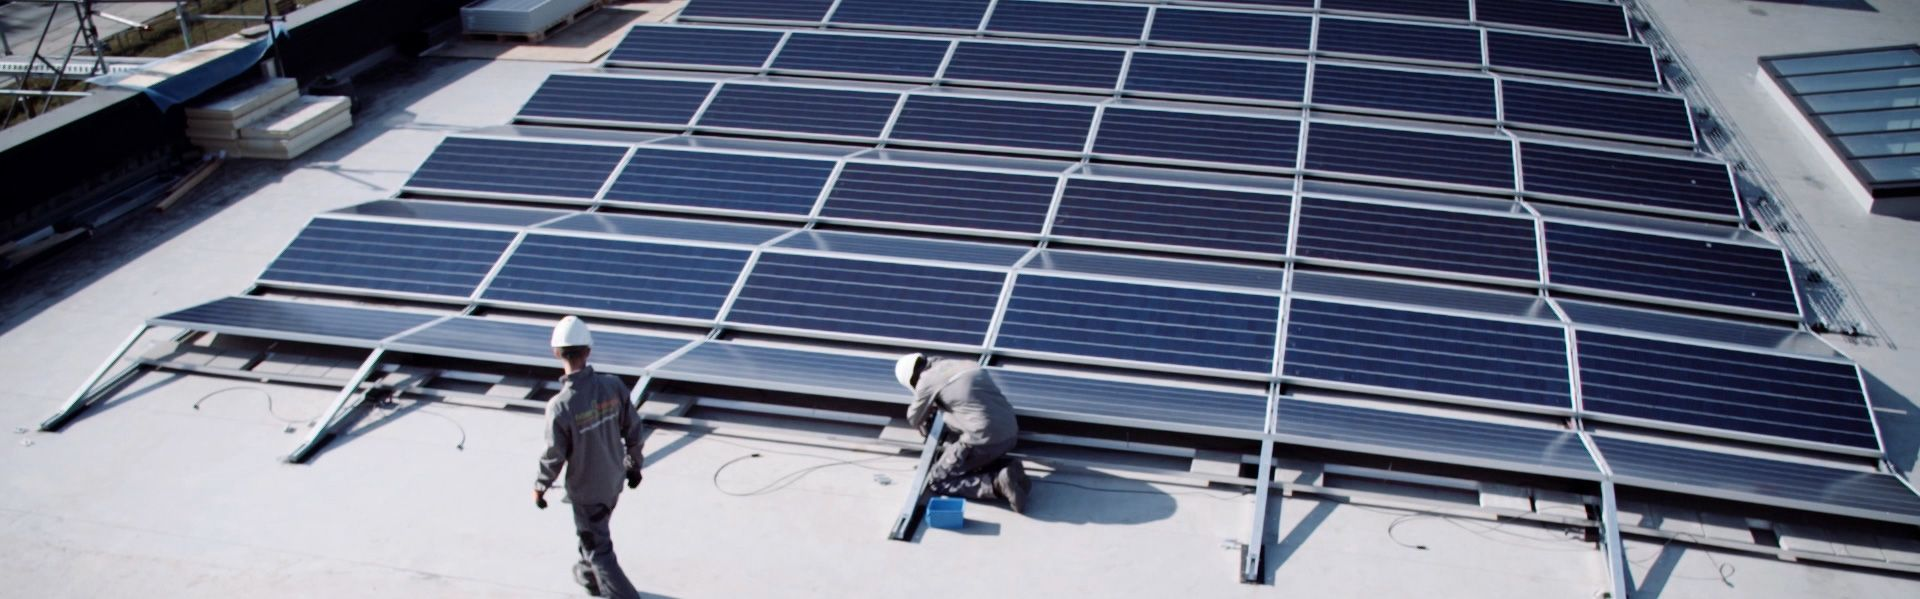 Developers on rooftop by solar panels